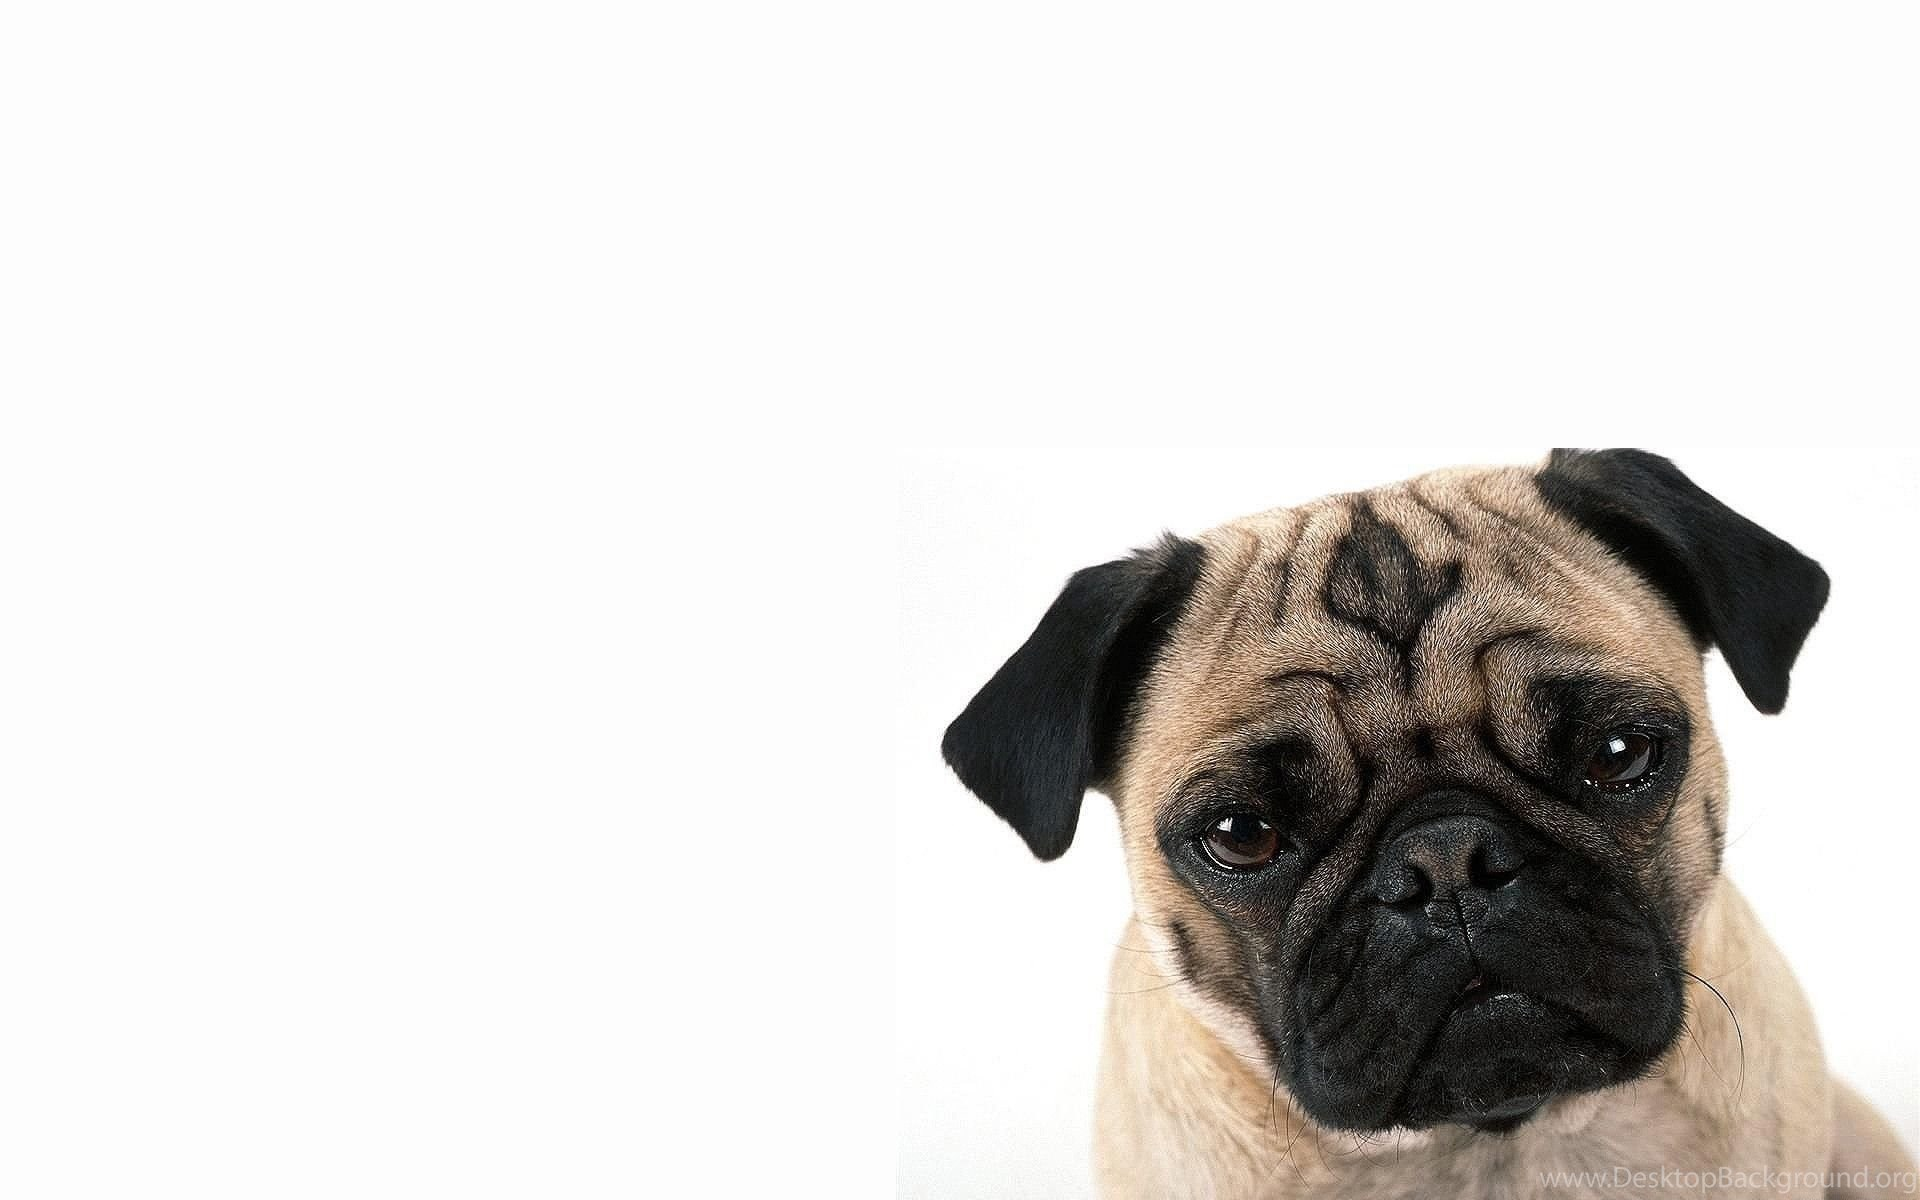 Pug Iphone Wallpaper: Pug Cute Dog Wallpapers Desktop Background